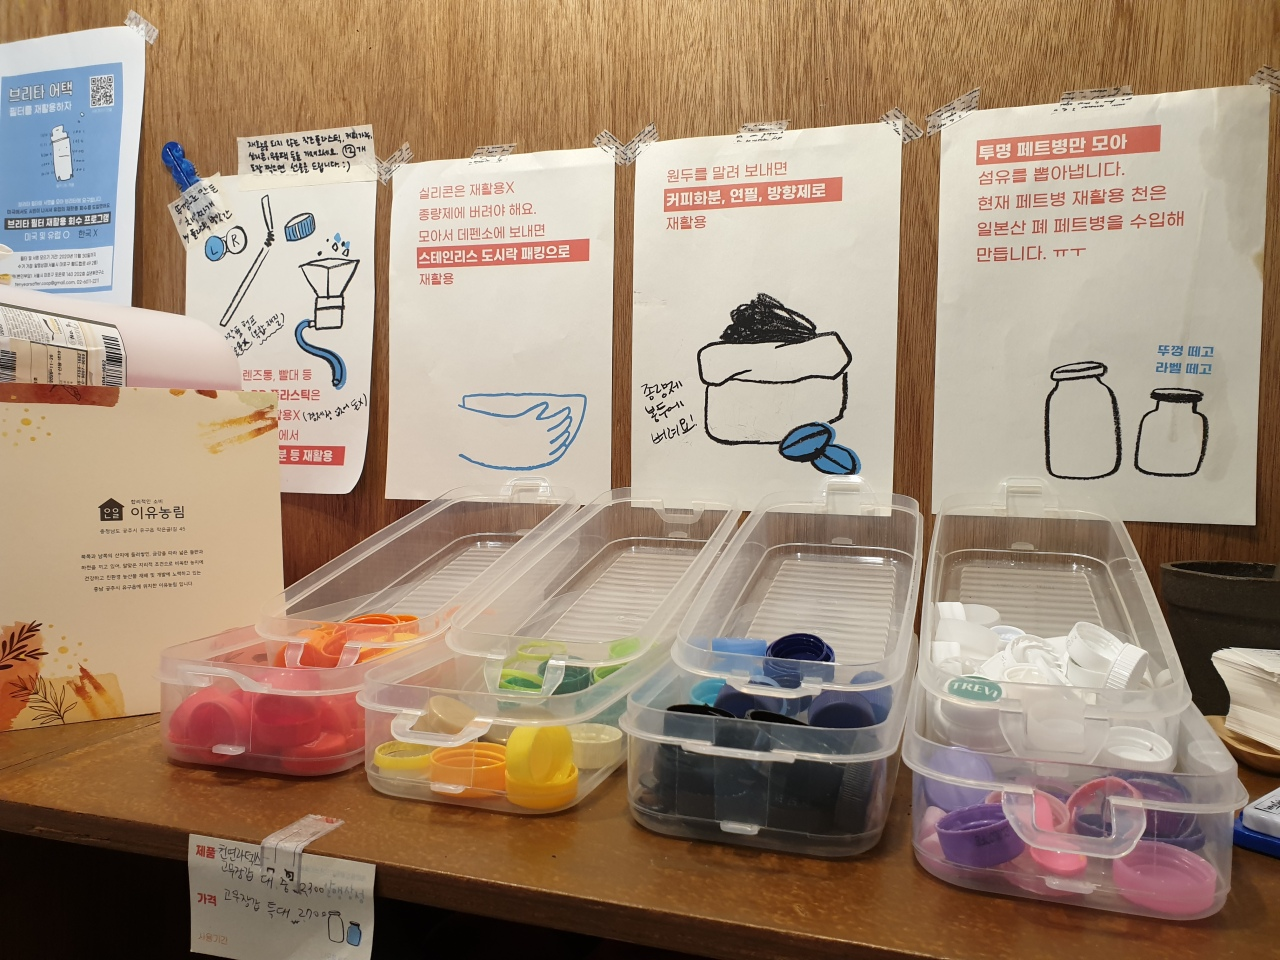 Almang Market collects plastic lids from customers, which will be turned into toothpaste dispensers, according to the store. (Park Yuna/The Korea Herald)